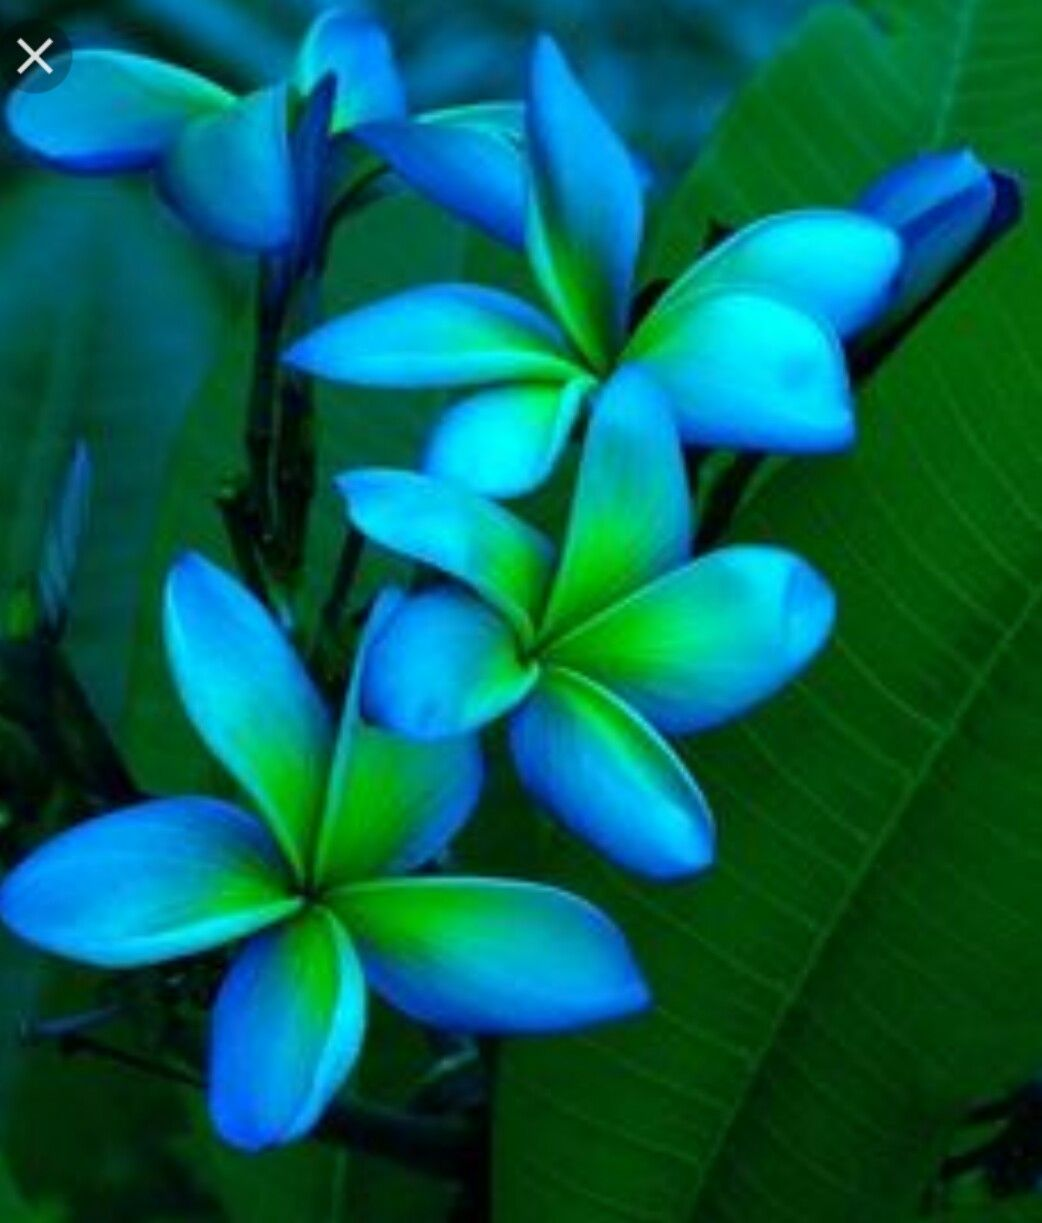 Pin by zachary varnes on flowers pinterest flowers and gardens blue and green plumeriasould i someday have a son to contrast the pink and orange plumeria tattoo i have for ave izmirmasajfo